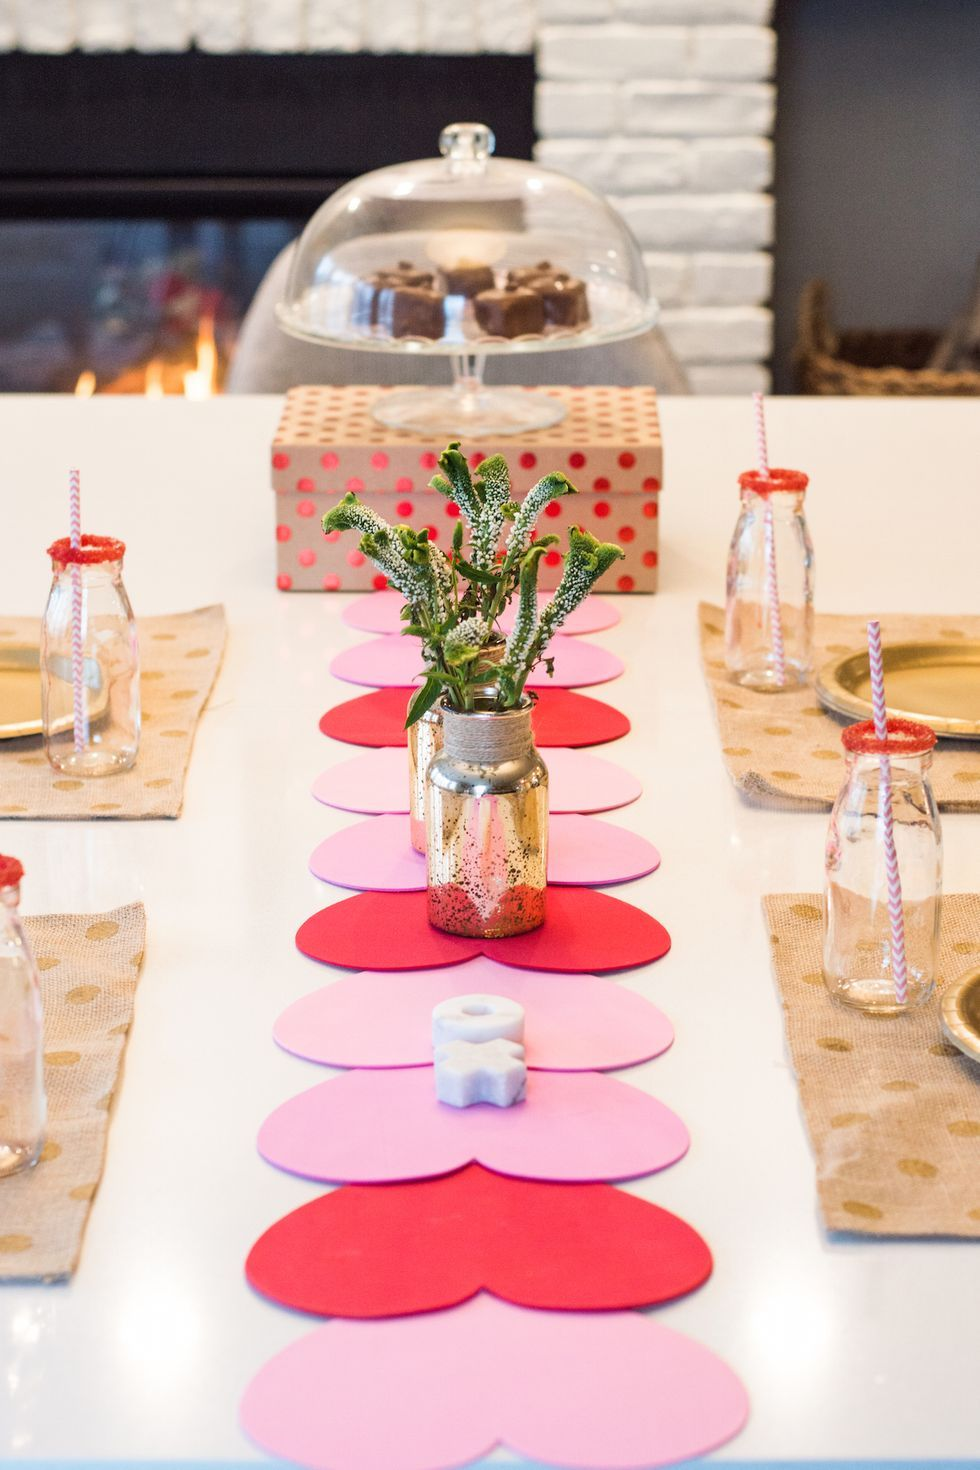 Easy DIY Valentine's Day decor ideas and Valentine's decorations: Heart table runner